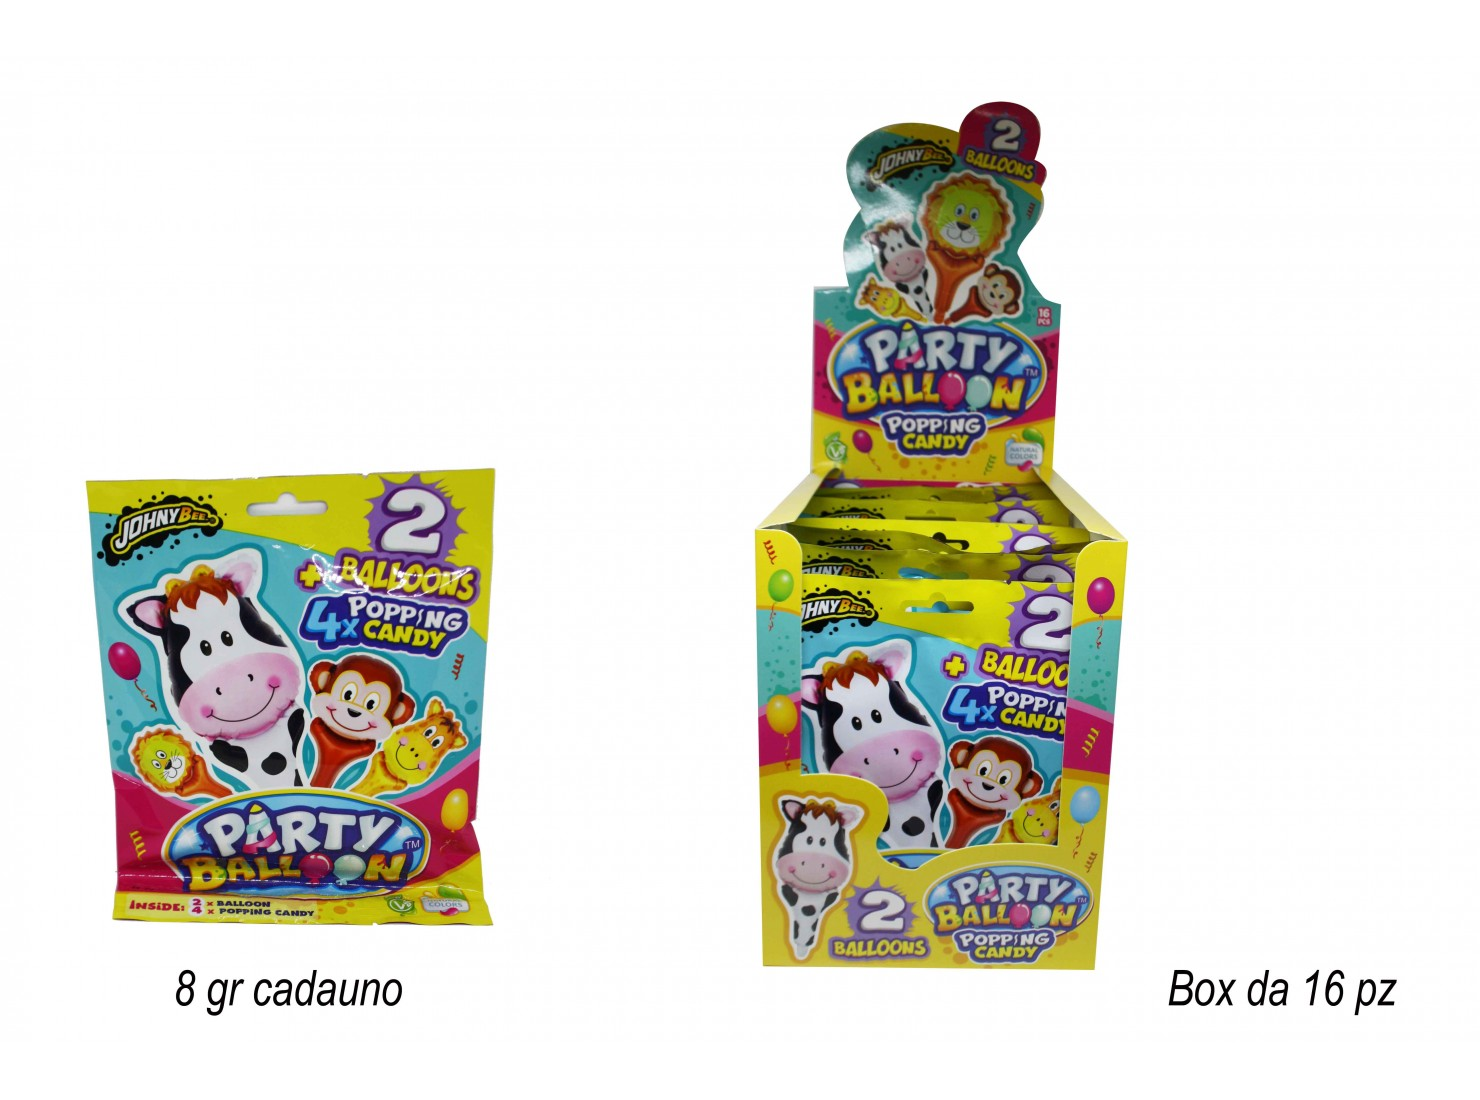 POPPING CANDY PARTY BALOON